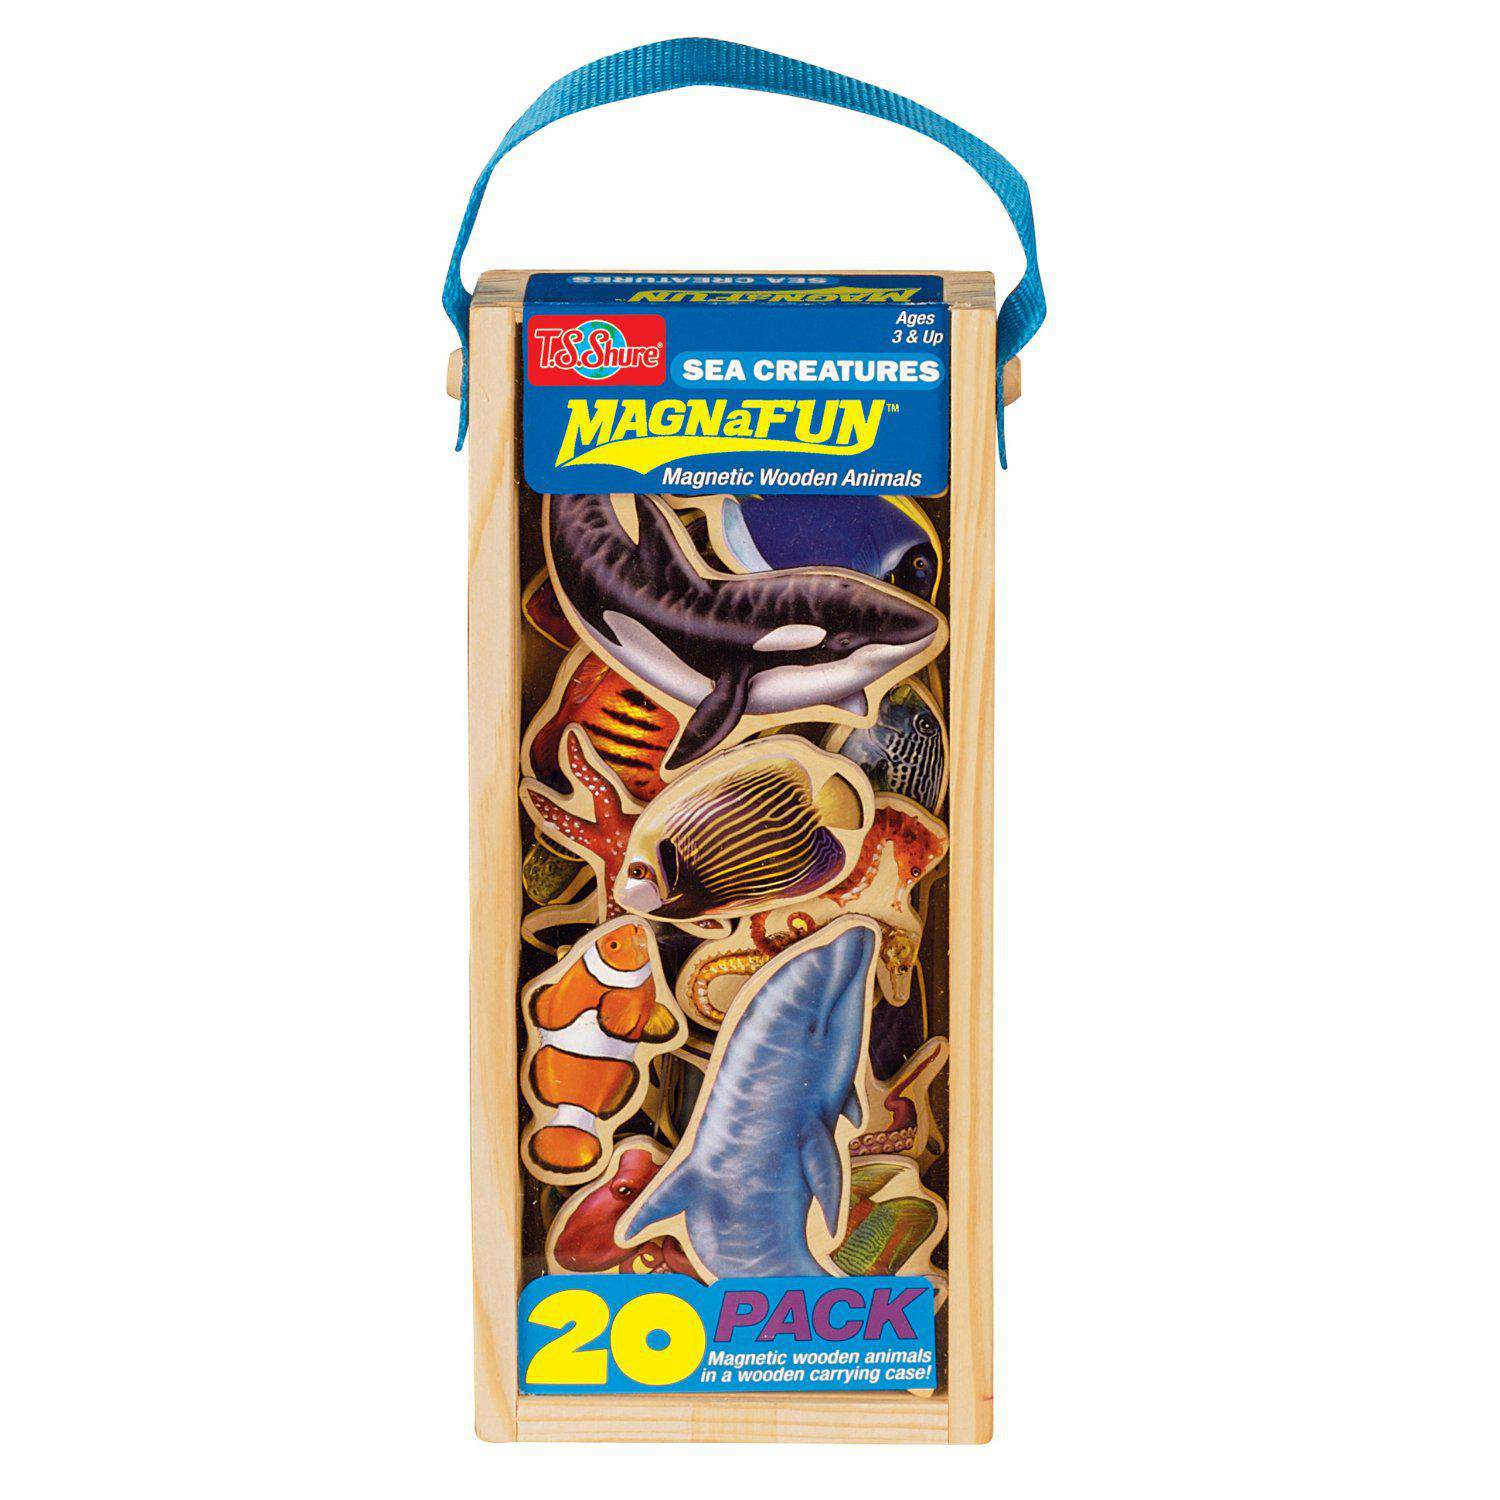 Magnetic Wooden Pretend Play: Sea Creatures Magnanimals      Code # 9213